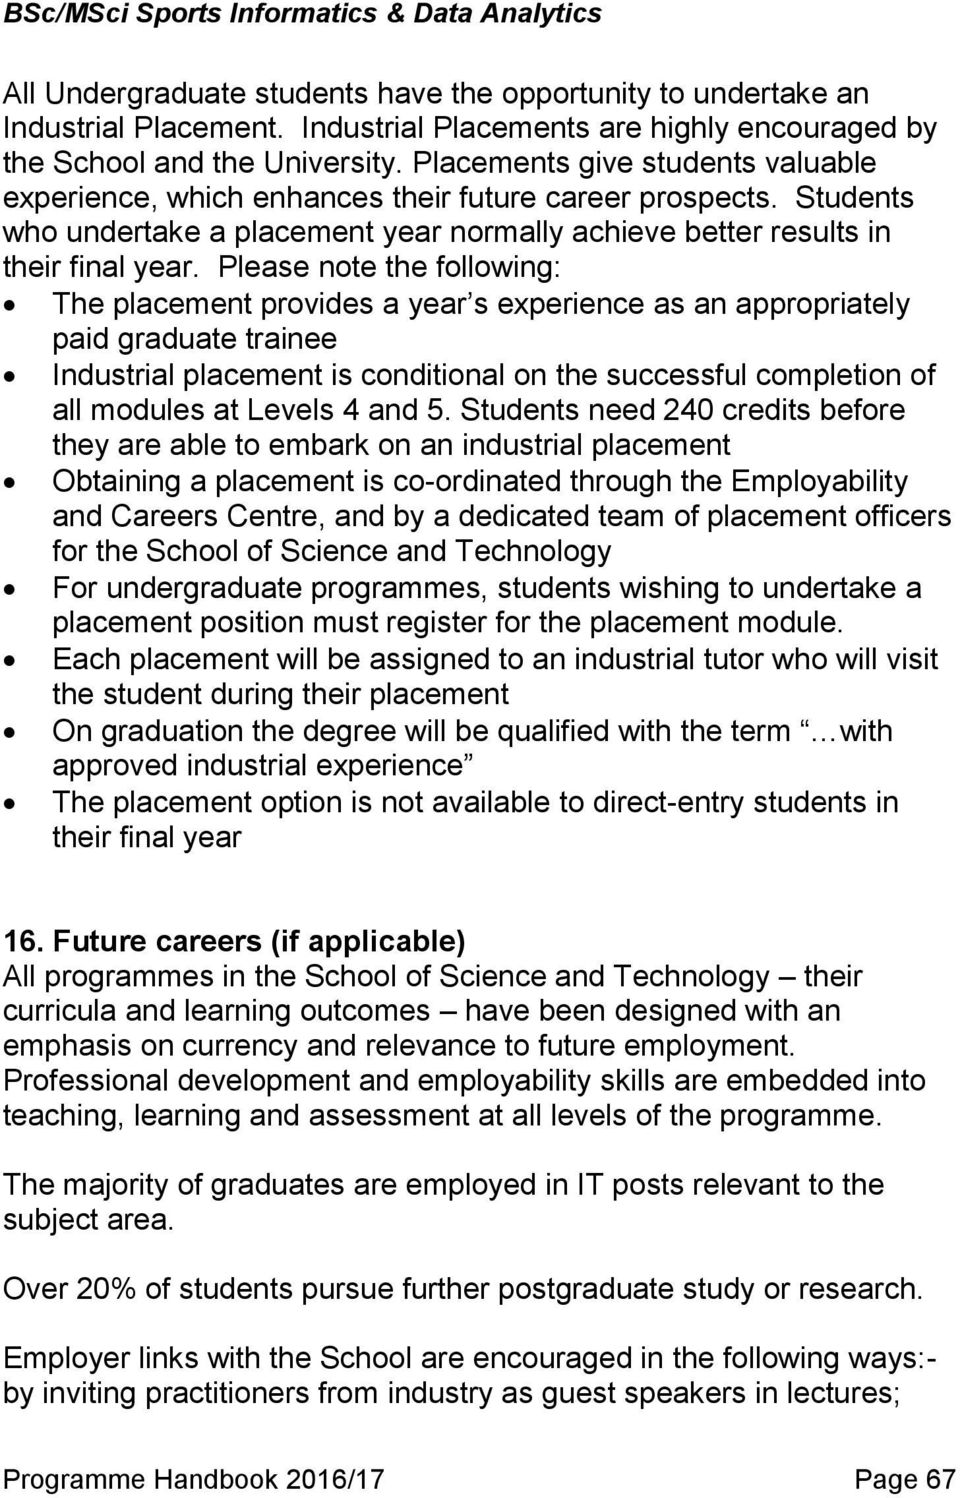 Please note the following: The placement provides a year s experience as an appropriately paid graduate trainee Industrial placement is conditional on the successful completion of all modules at